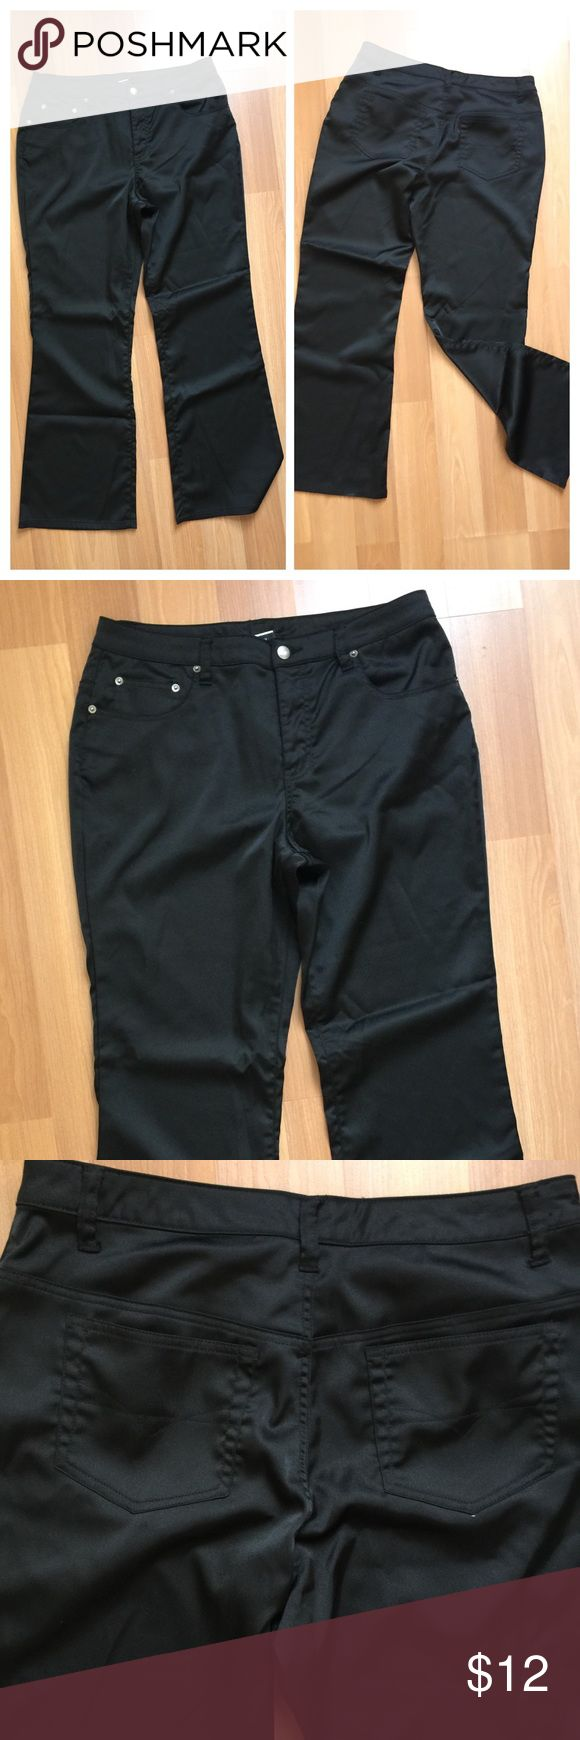 "Shiny black trousers Women's wide legged stretch trousers. Size 14. Shiny stretch material with front and back pockets (much like jeans) and front zip closure. Lots of stretch!  Waist measures flat at 17"" Inseam measures 31""  No swapping, but I do offer bundle discounts. Find more in your size with my hashtag #brokebride14  Happy to bundle!  #wideleg #trouser #dresspants #size14 #plussize #xl Fashion Bug Pants Trousers"